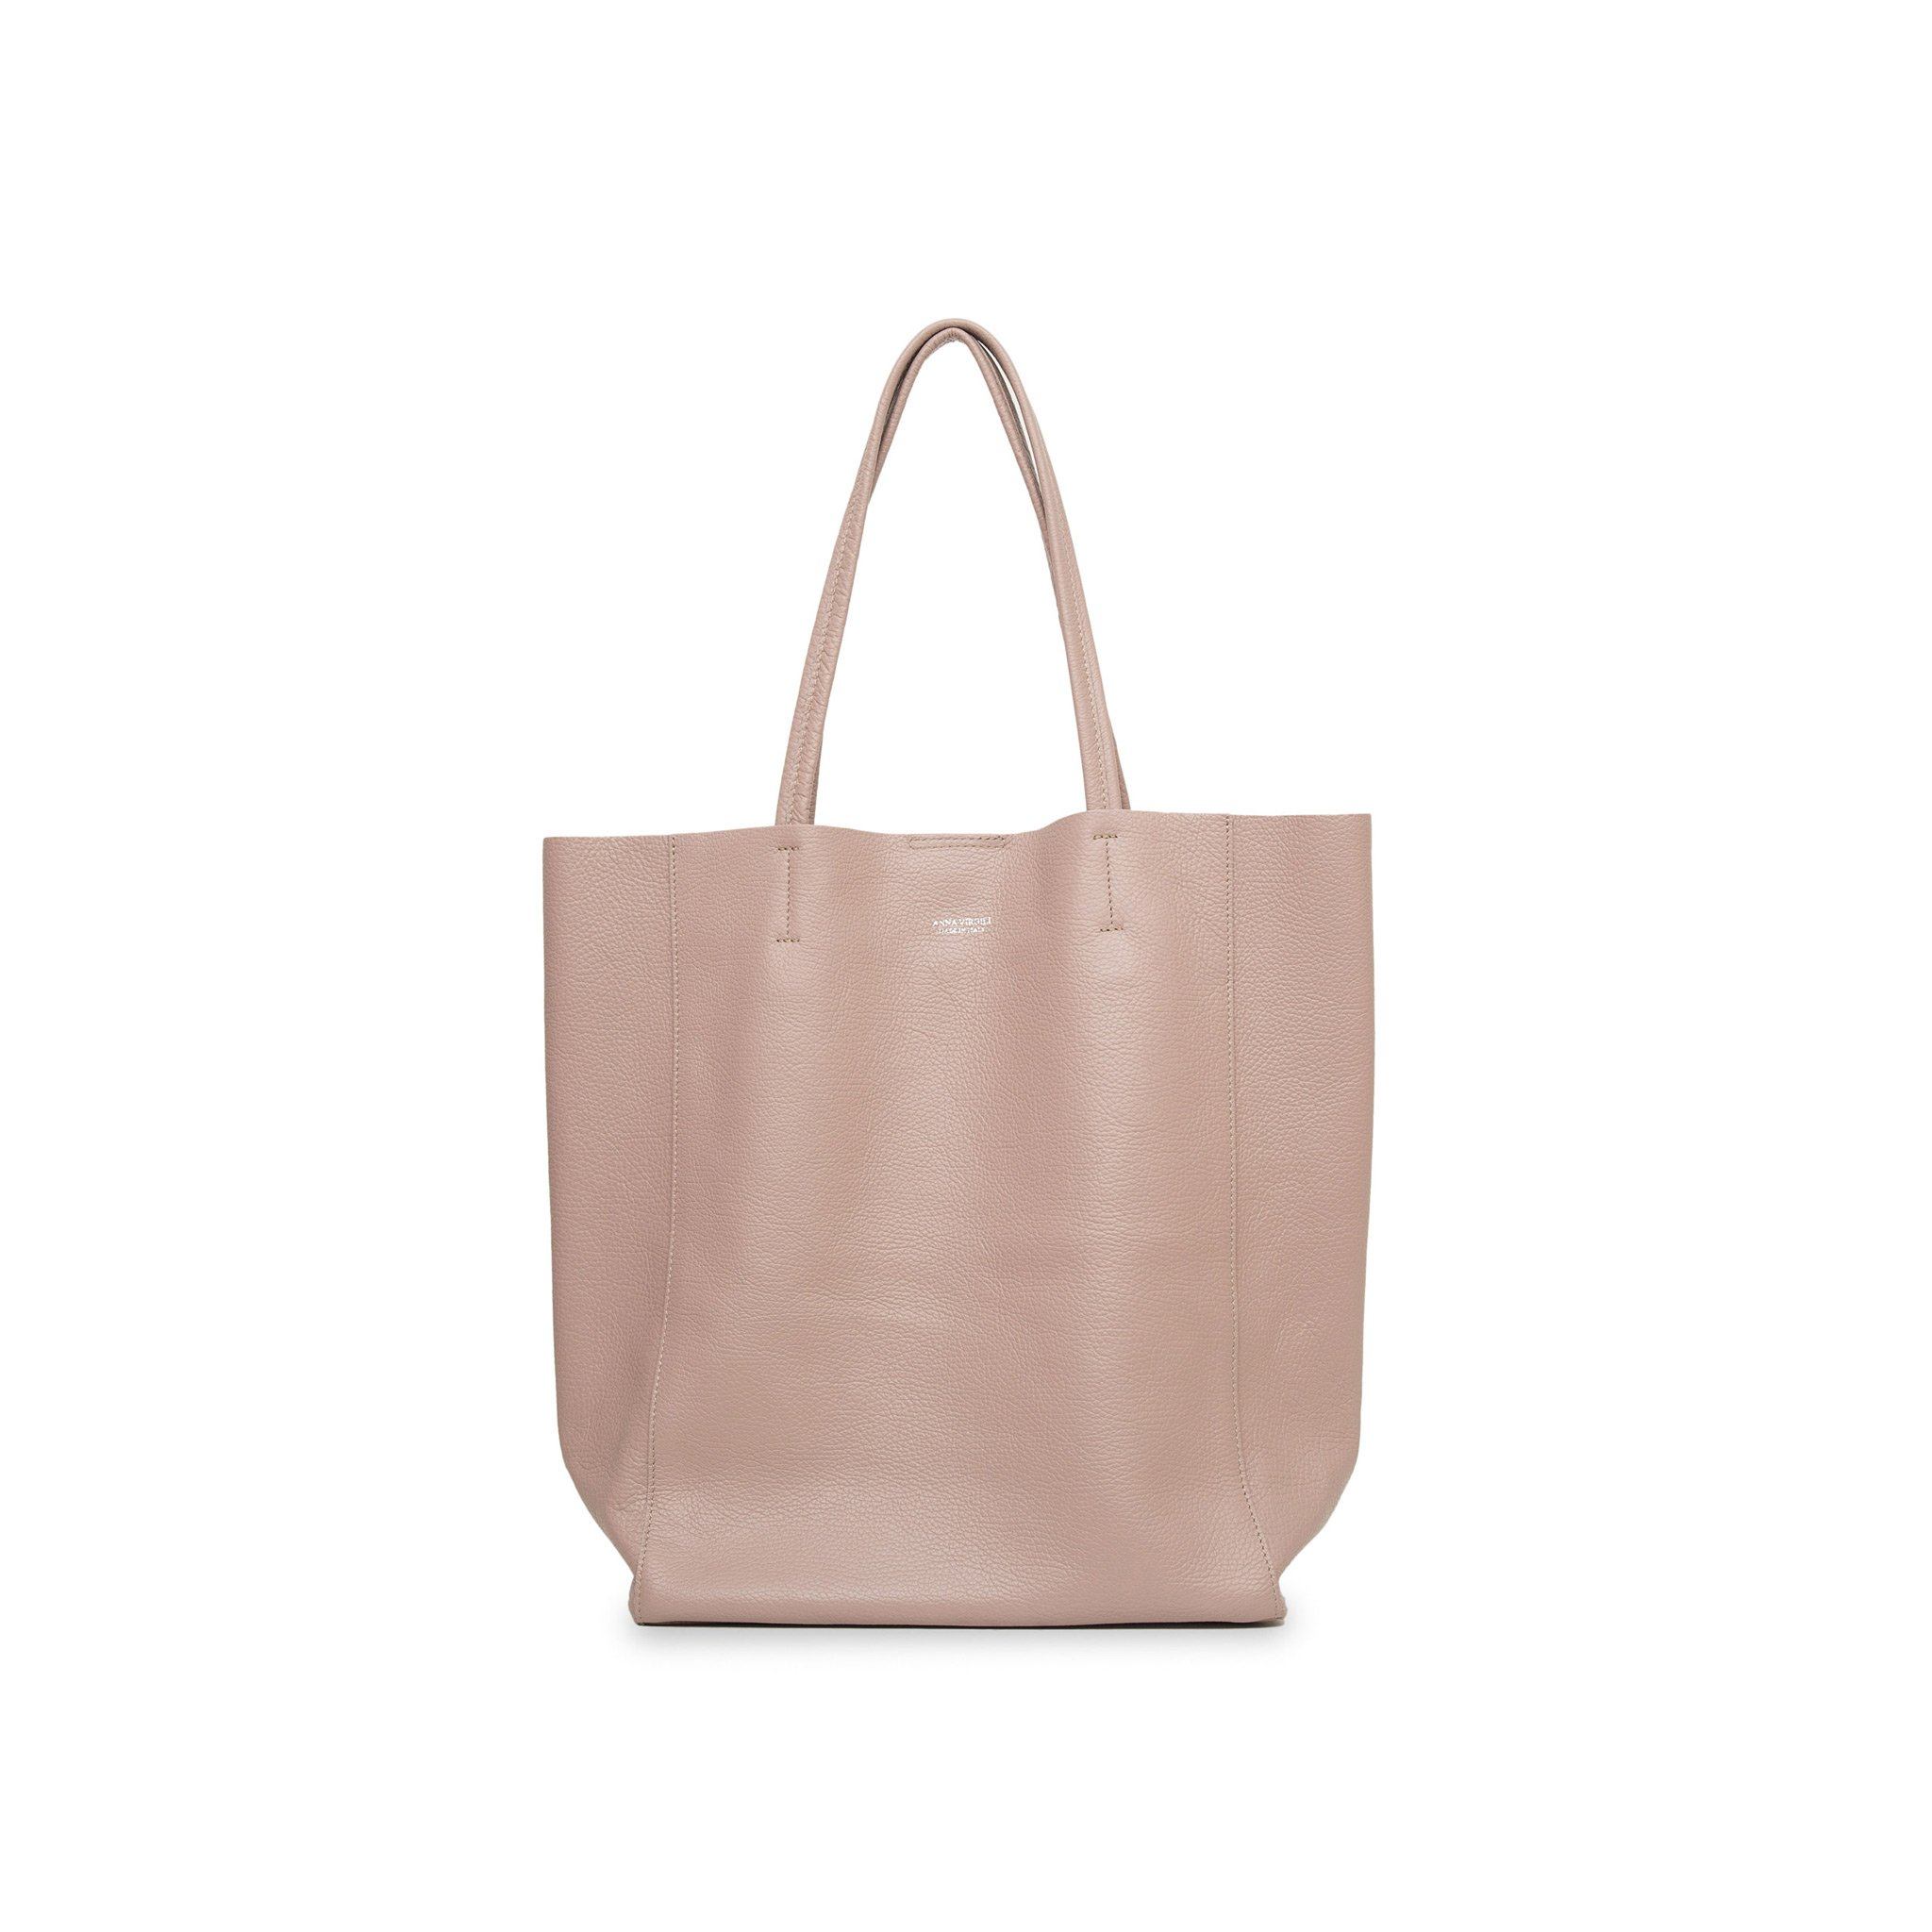 Lidia Palermo Soft Leather Tote -Nude